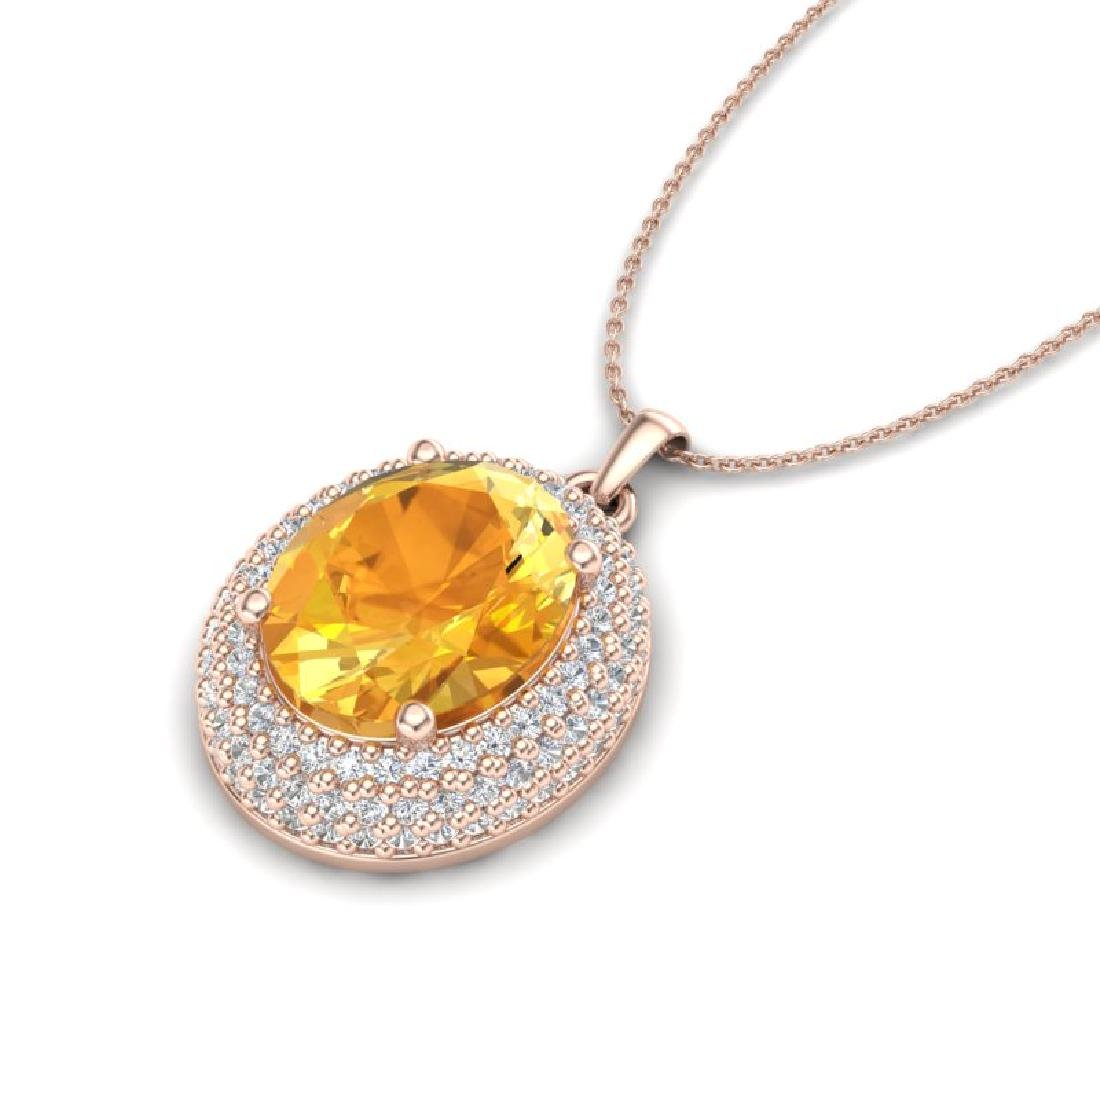 4 CTW Citrine & Micro Pave VS/SI Diamond Necklace 14K - 2